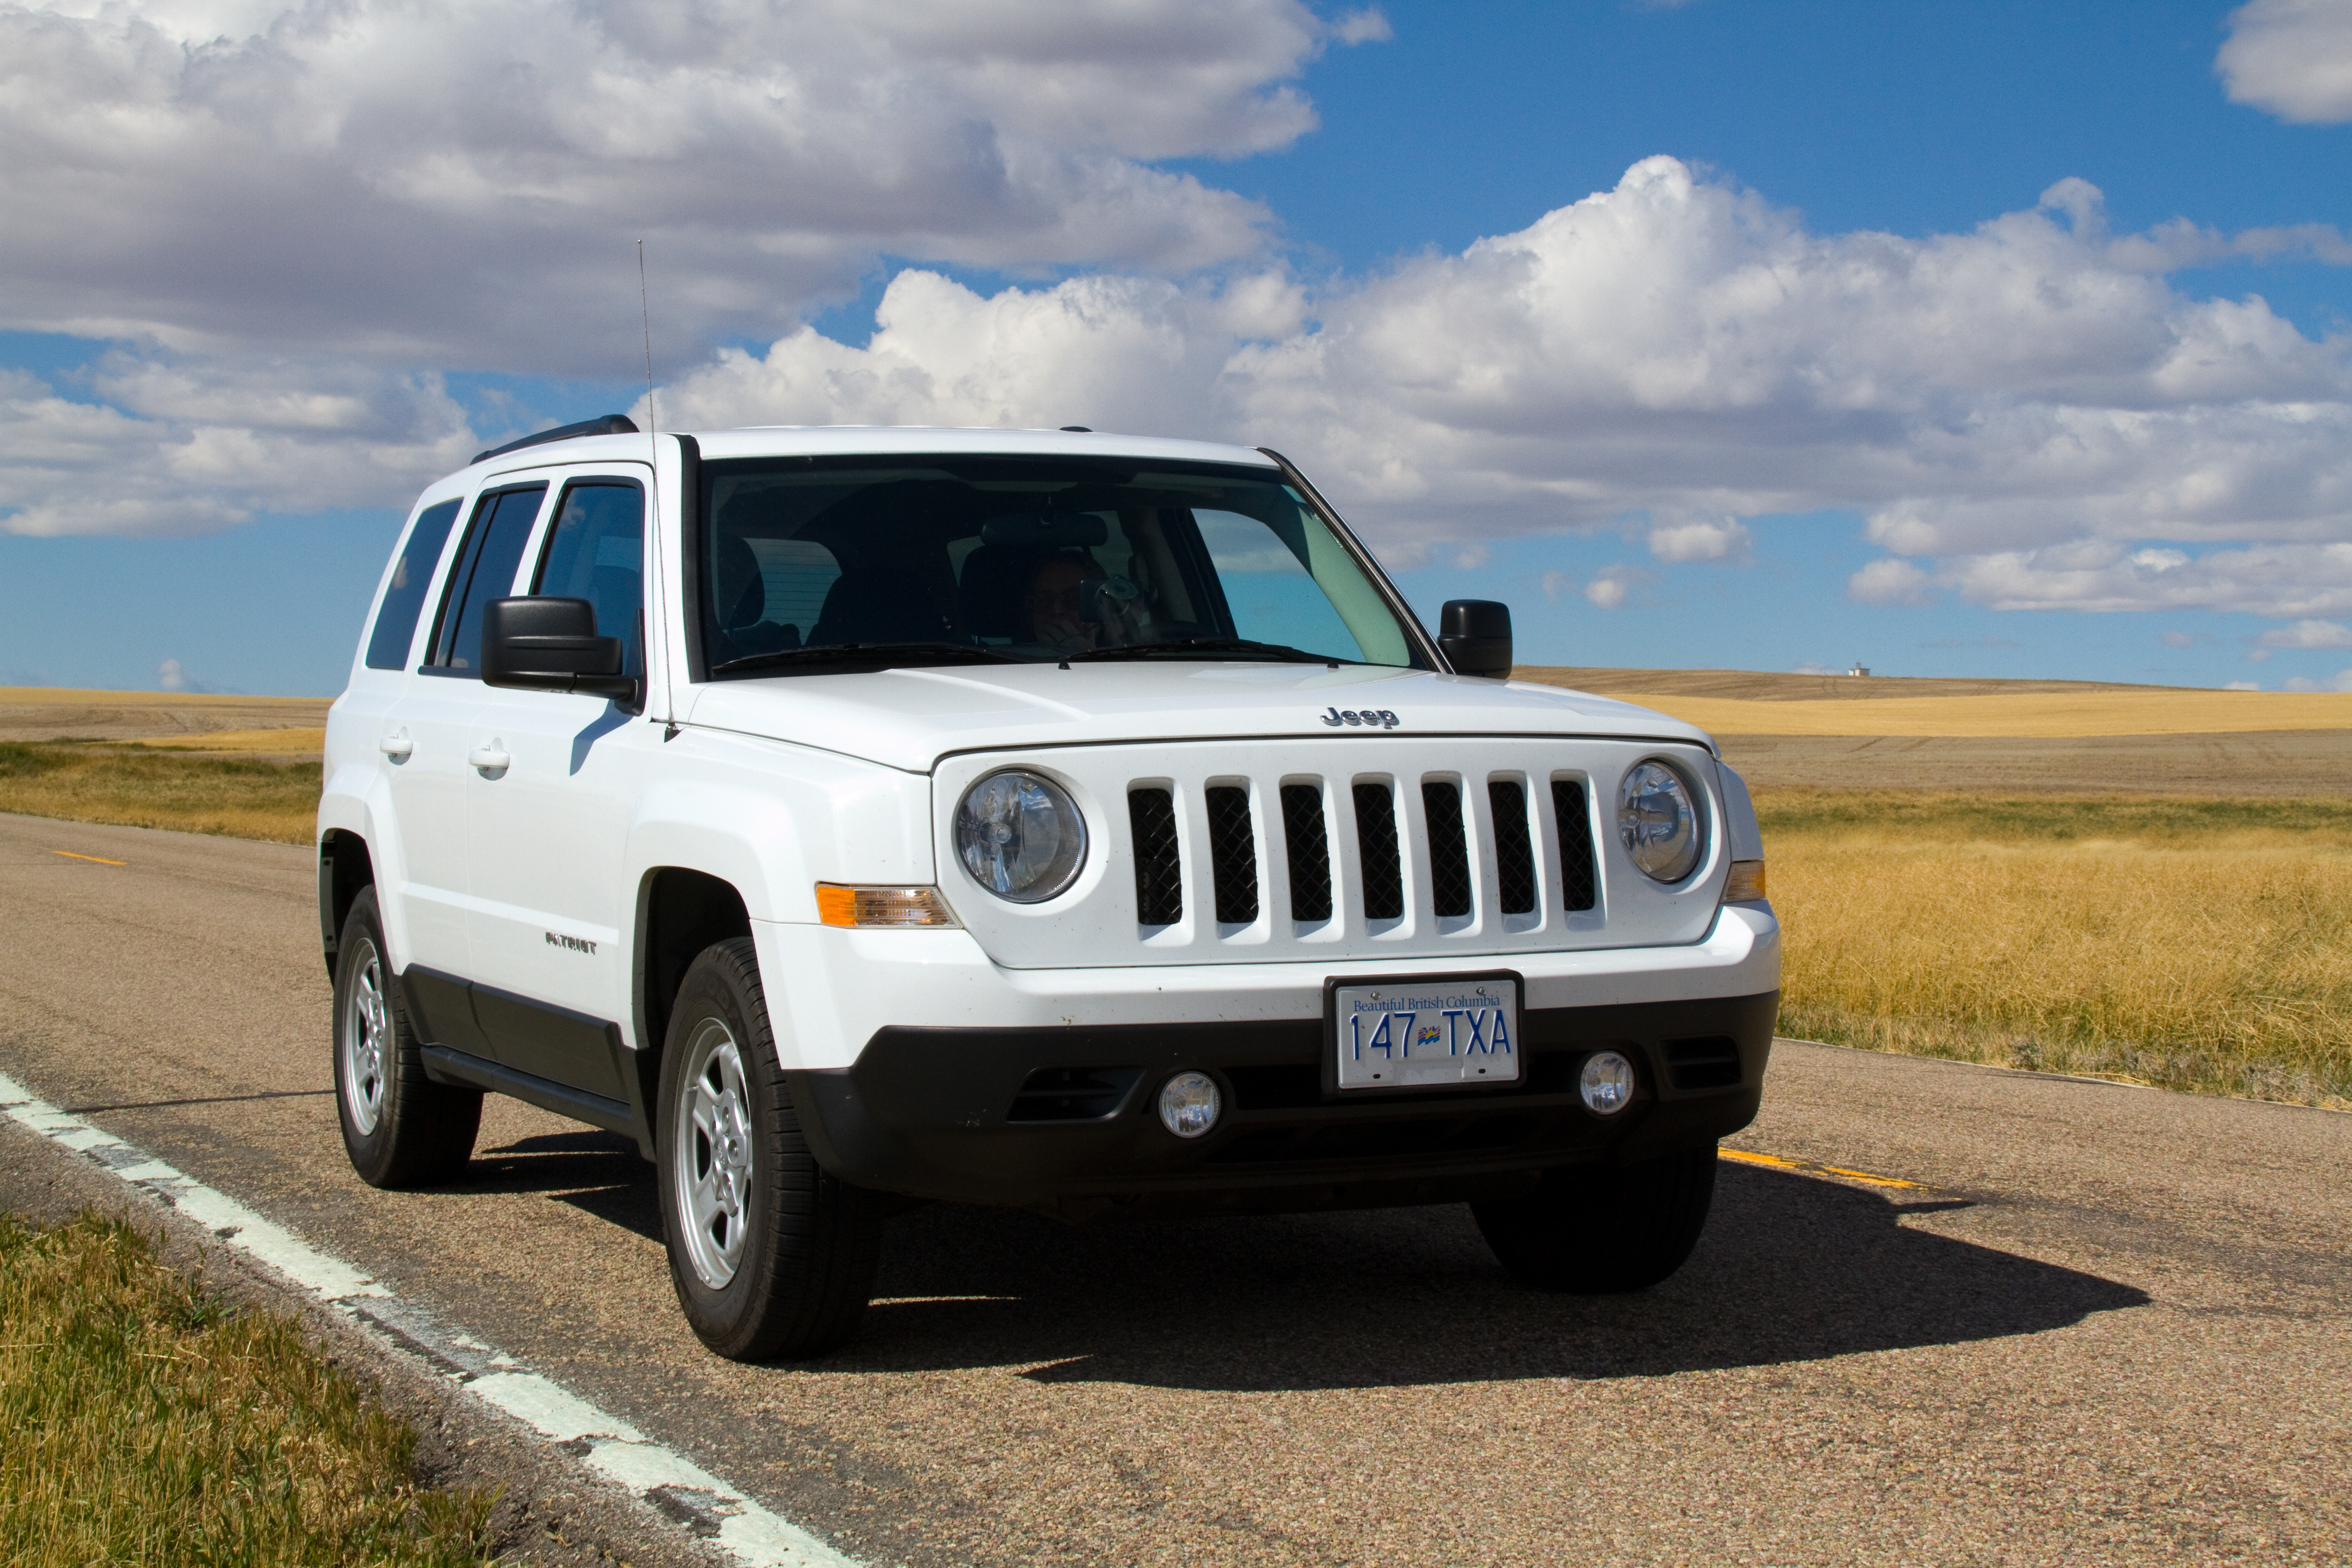 file:jeep patriot (8037098007) - wikimedia commons